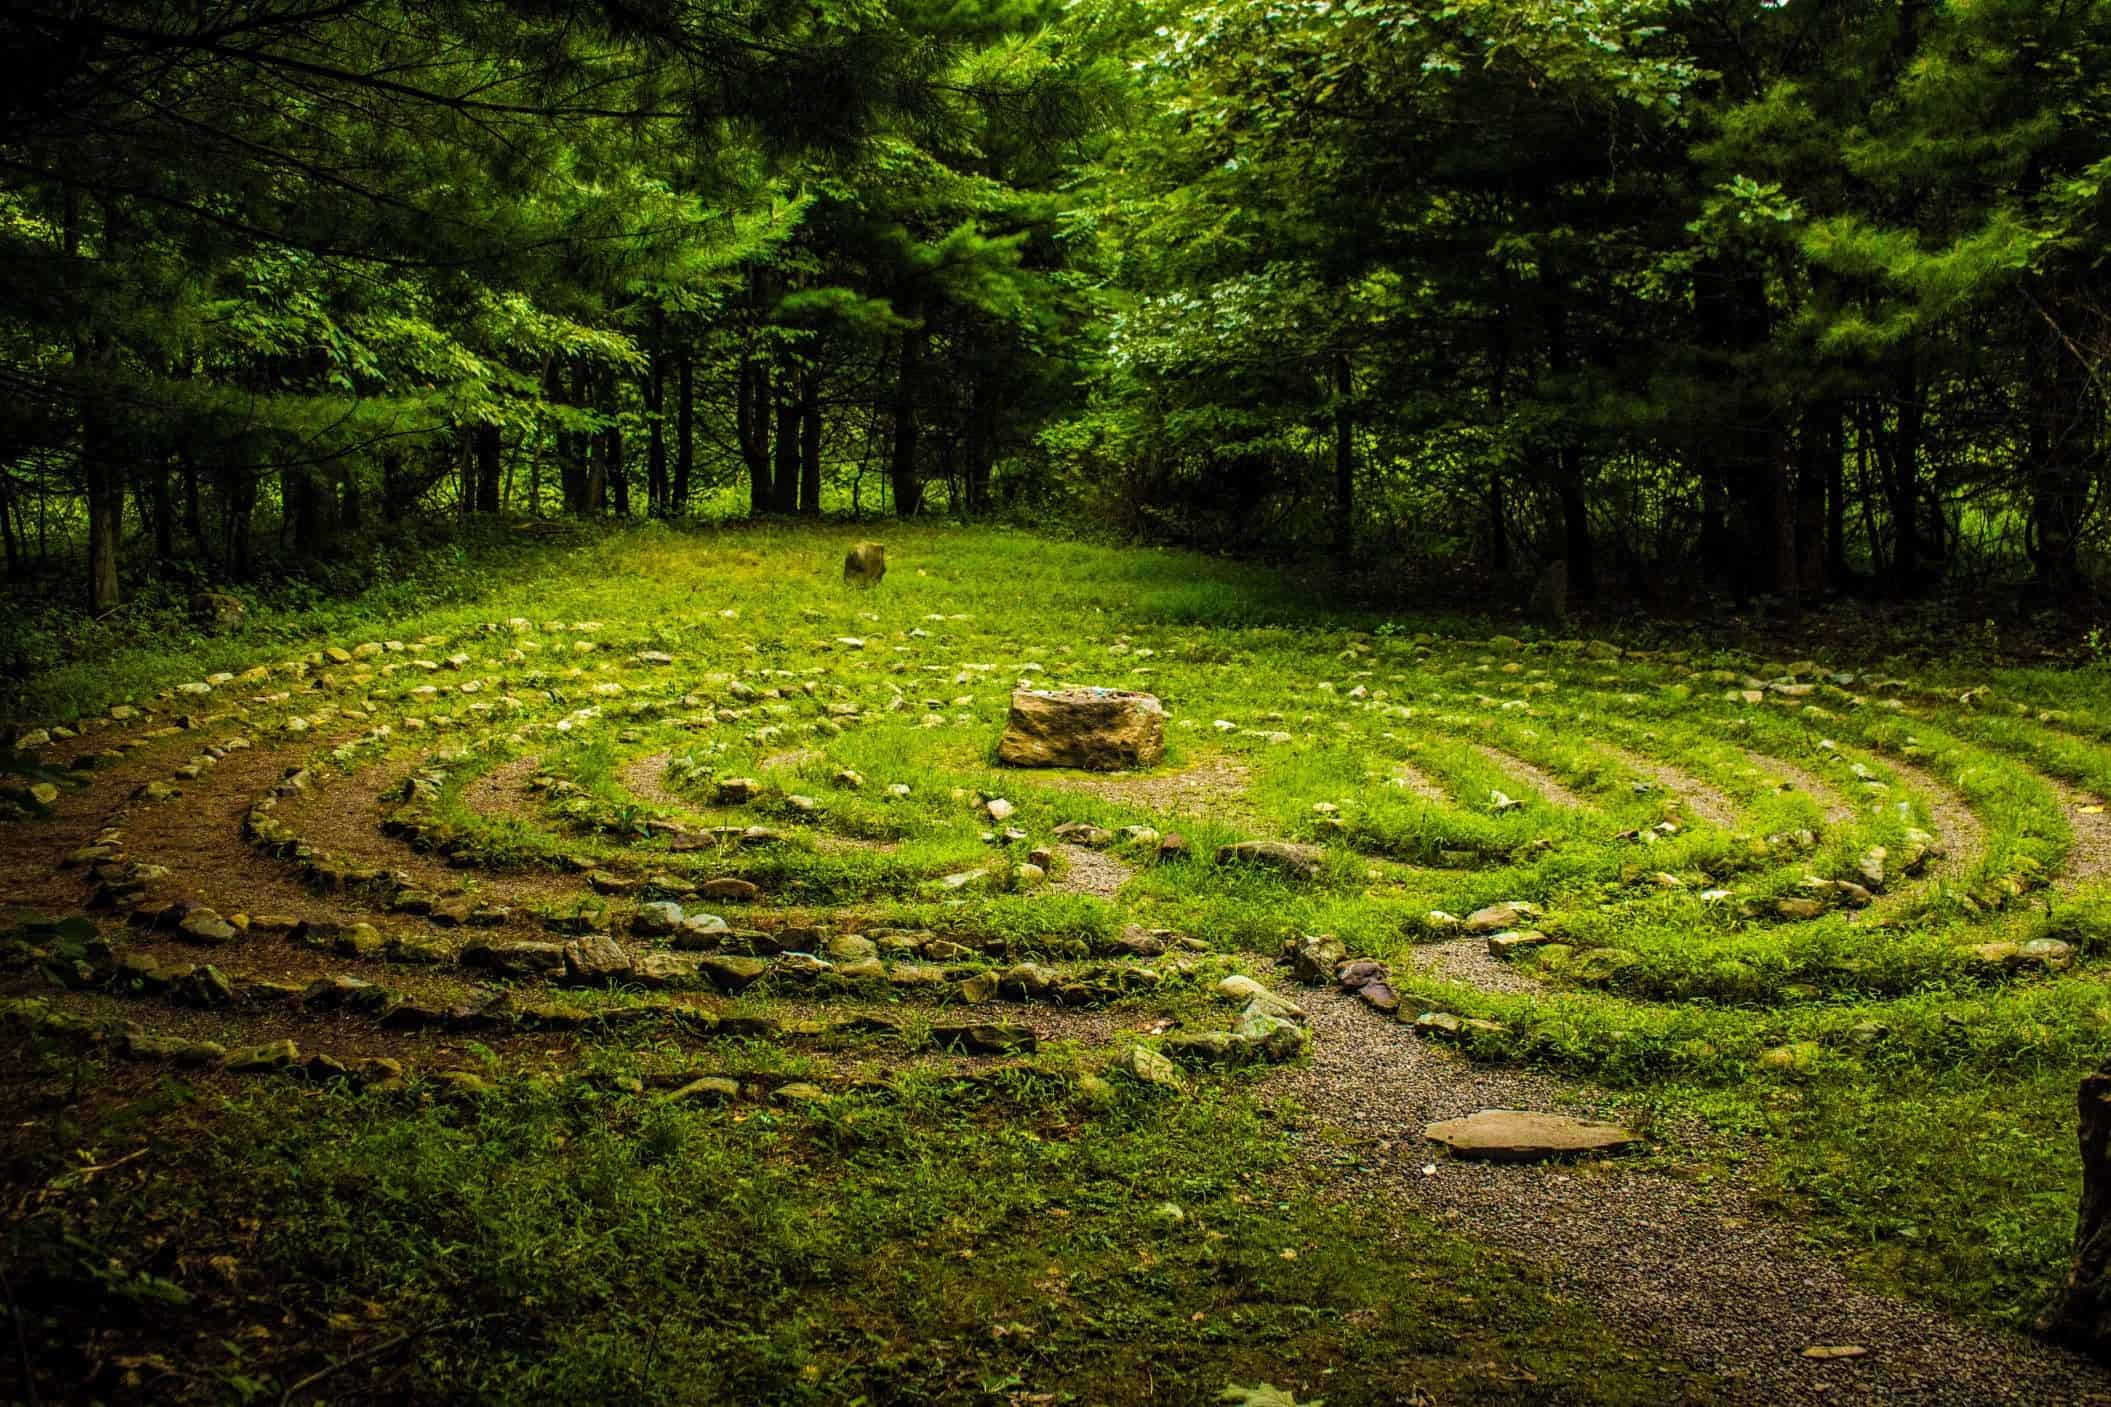 labyrinth set in a beautiful green and lush forest